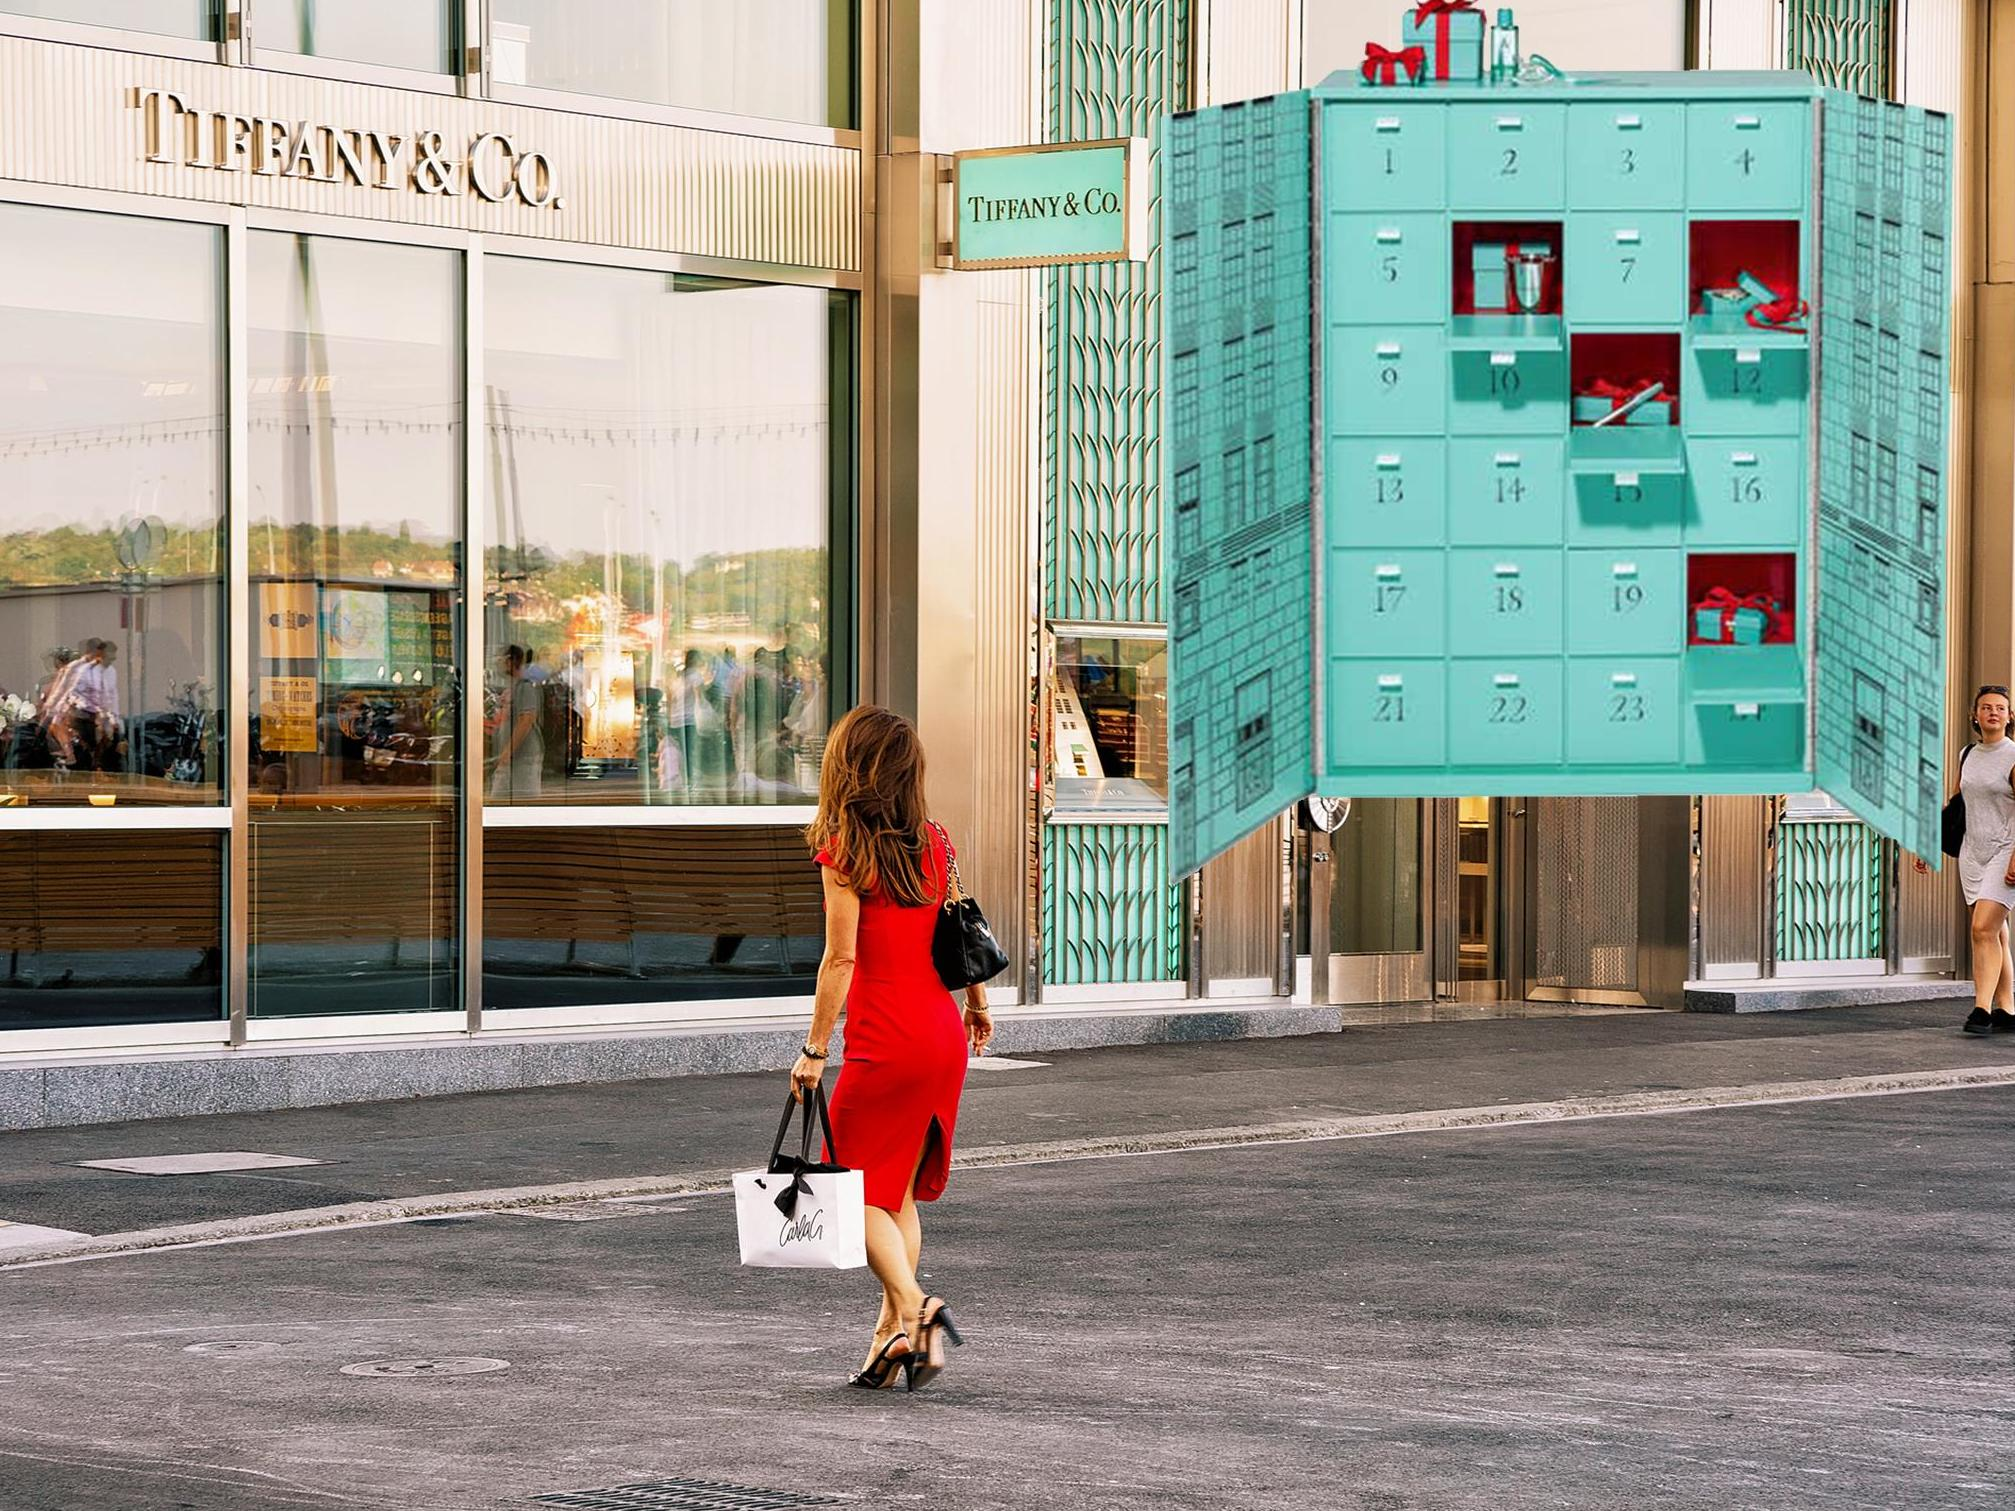 Louis Vuitton owner LVMH to buy Tiffany for $16.2bn